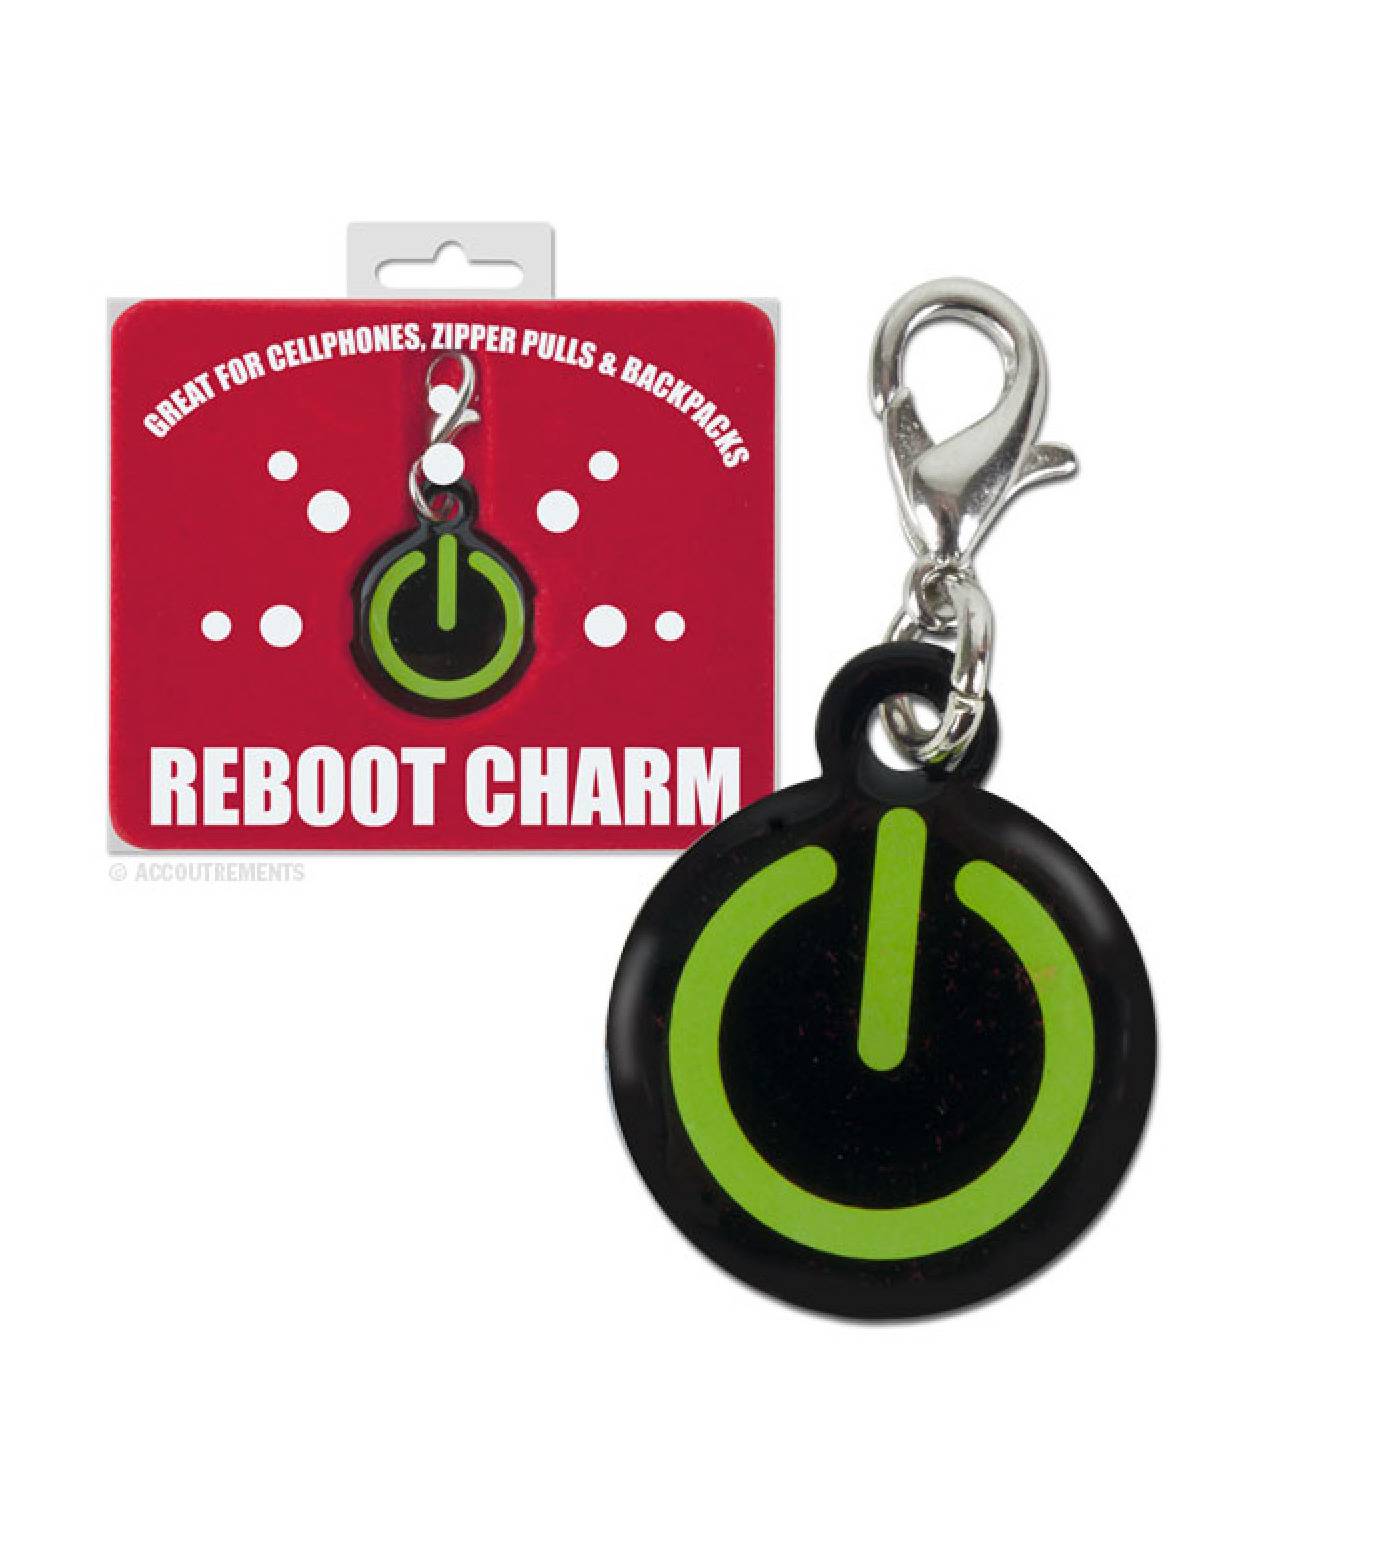 Accoutrements(アクータメンツ)のReboot Charm-BLACK(OTHER-GOODS/OTHER-GOODS)-12228-13 拡大詳細画像2